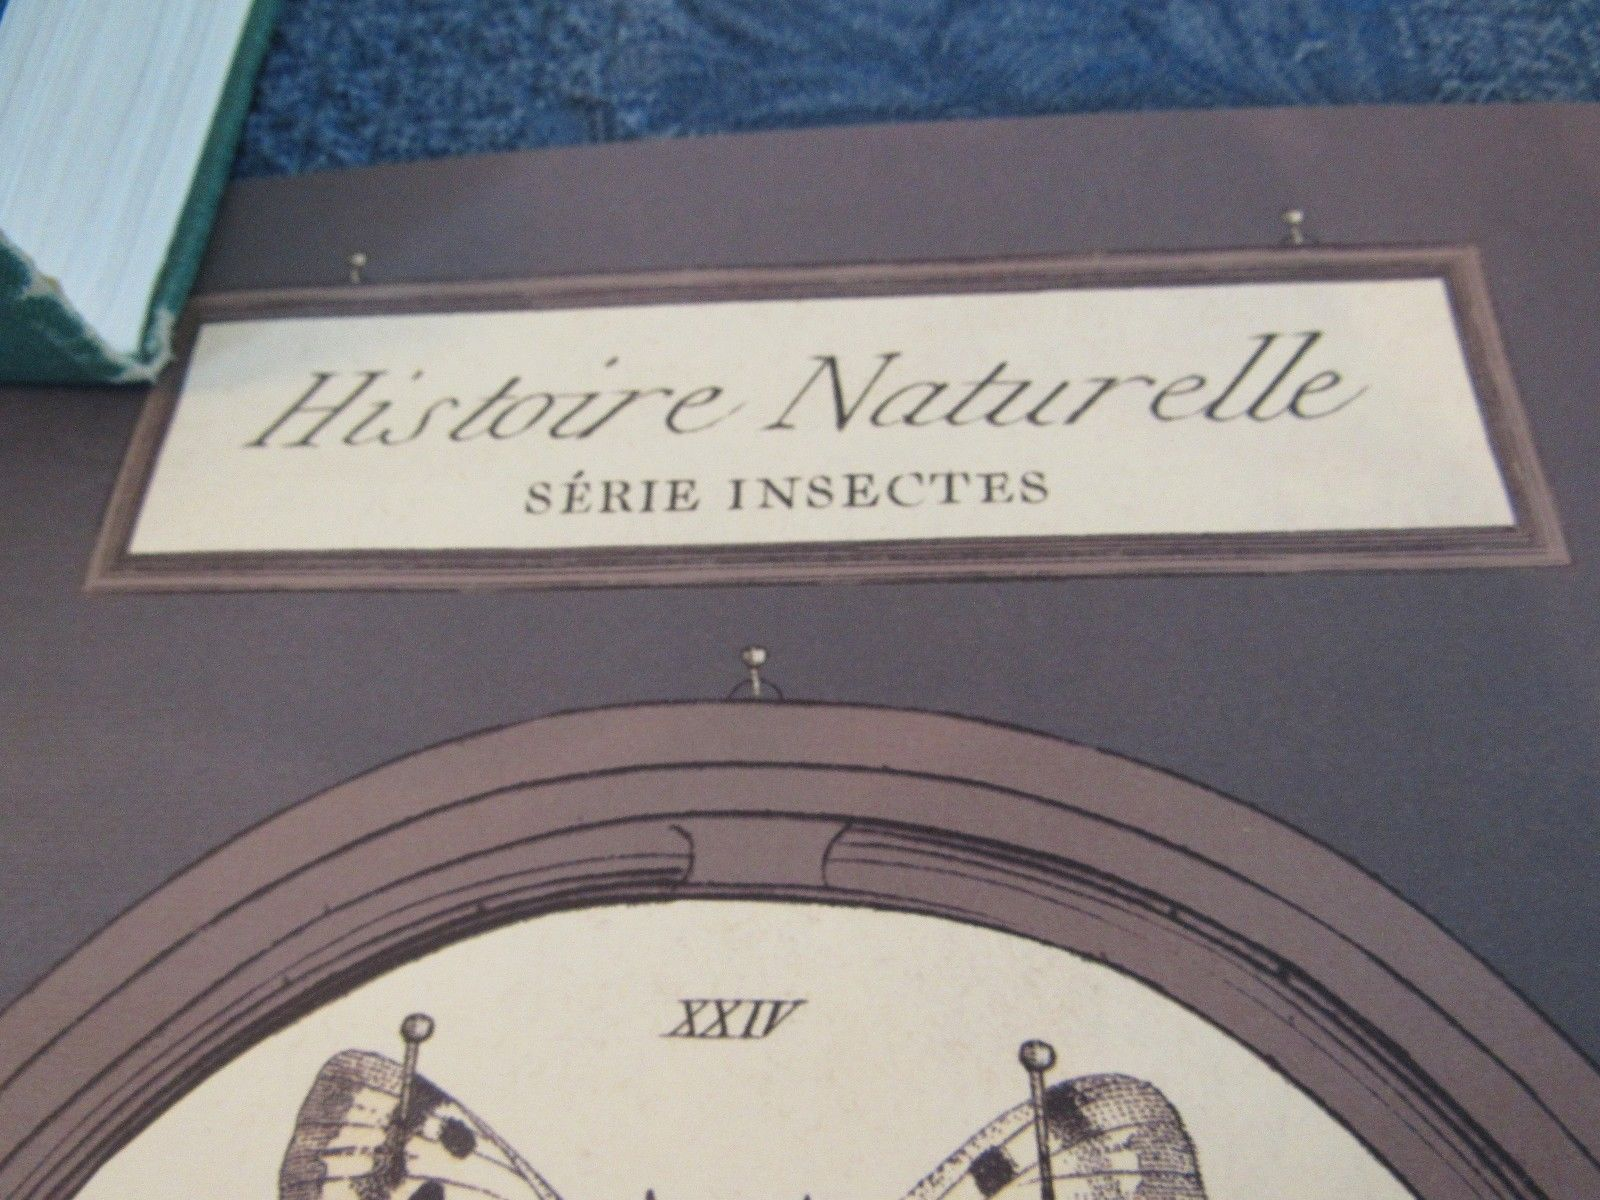 19th C Insect Plate- Histoire Naturelle Serie Insectes Reproduction Poster